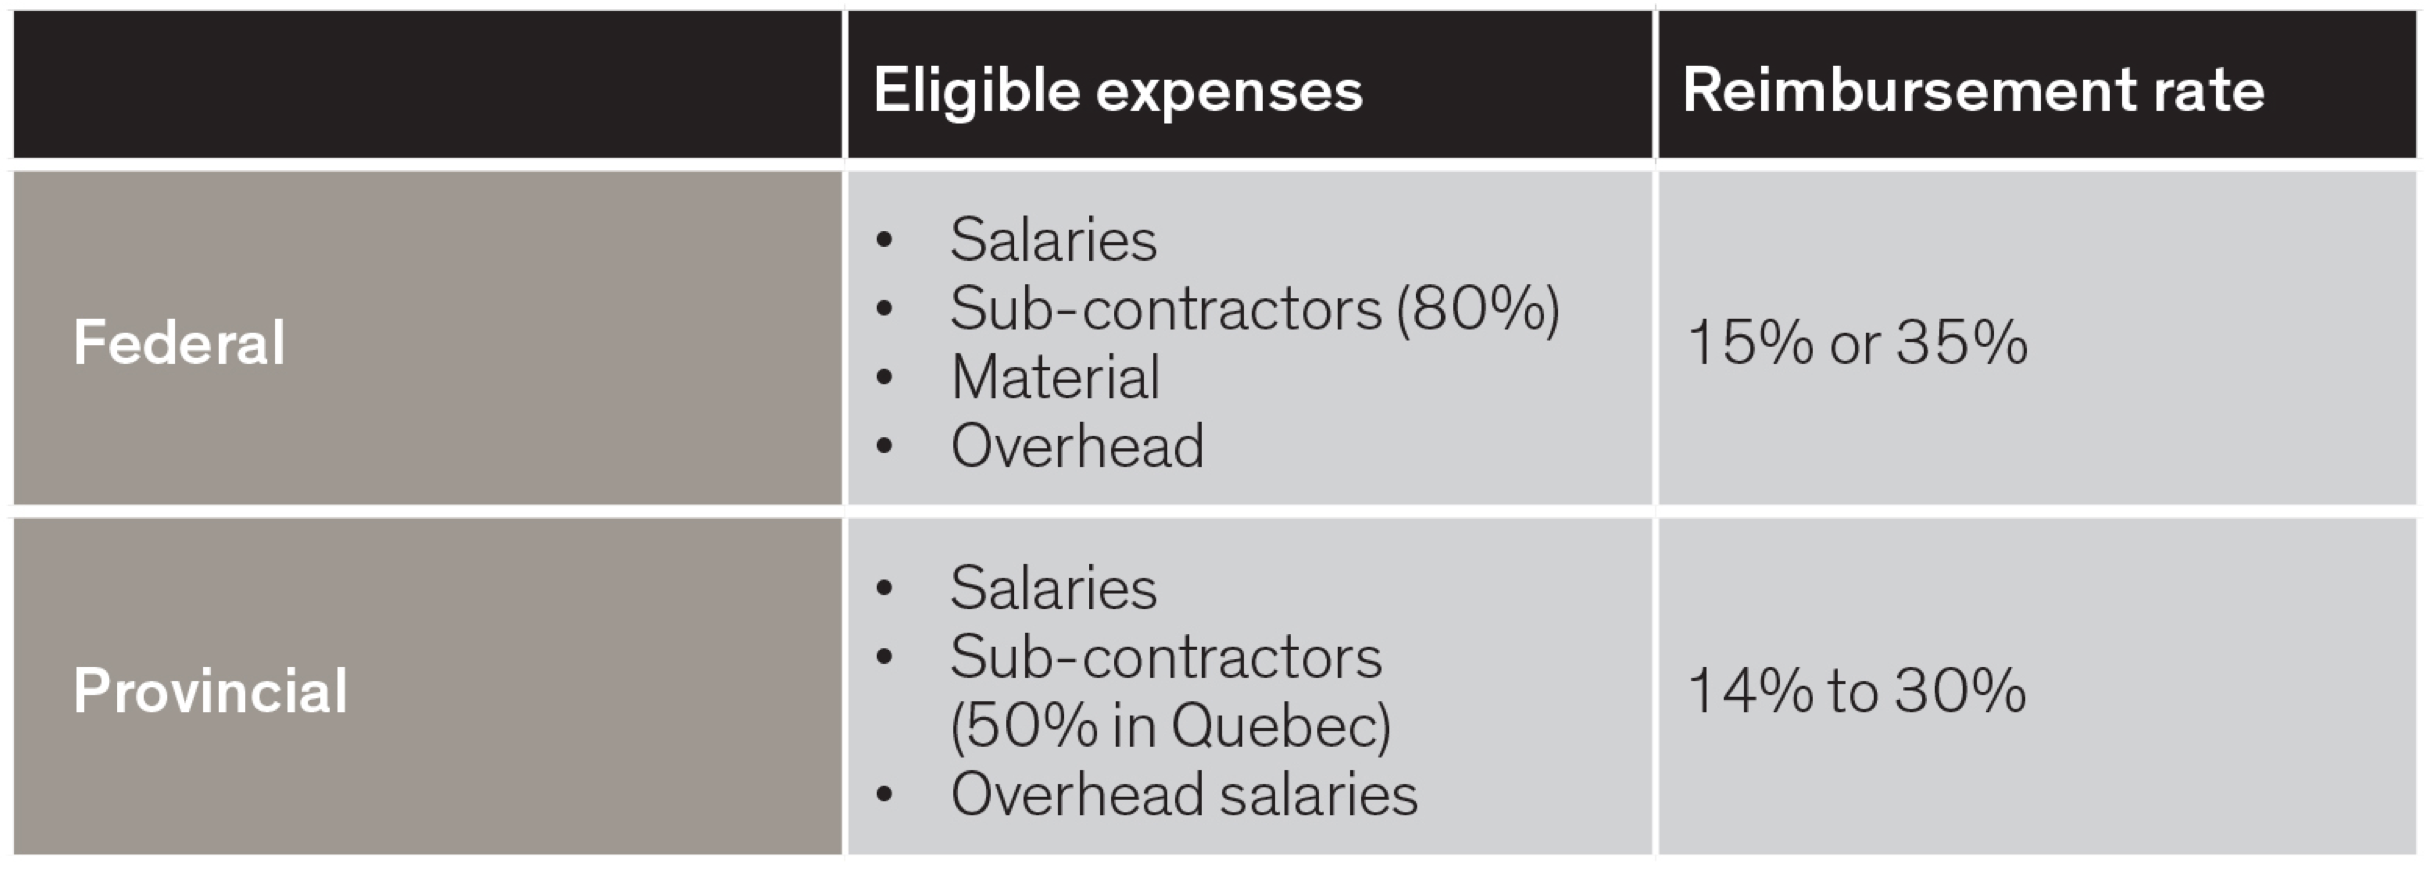 federal and provincial eligible expenses and reimbursement rate - graph